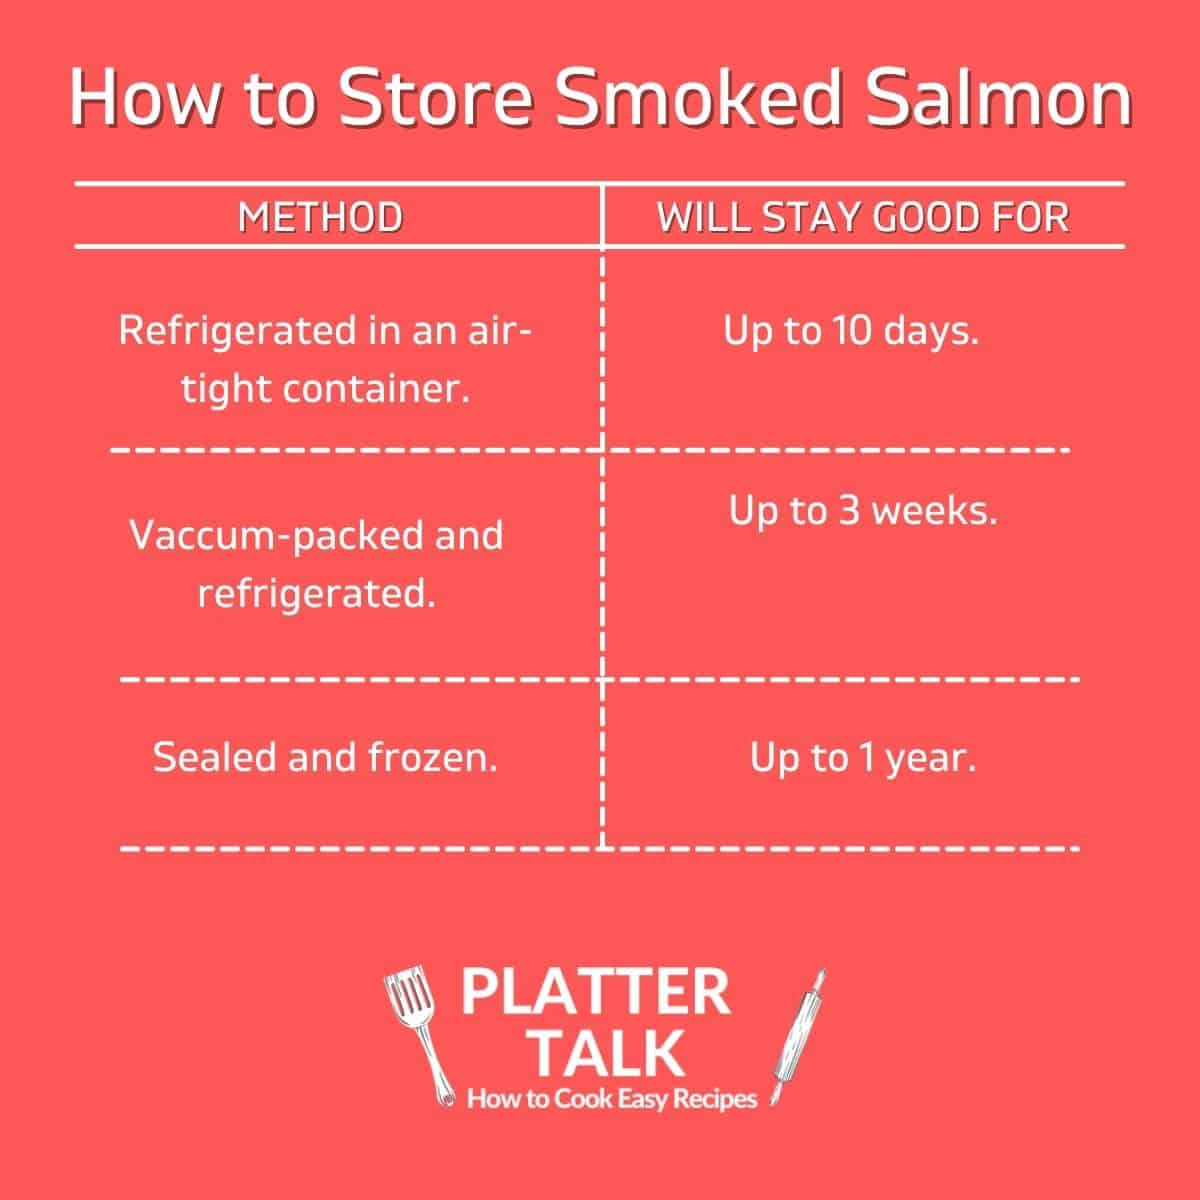 A chart showing how long smoked salmon stays good.